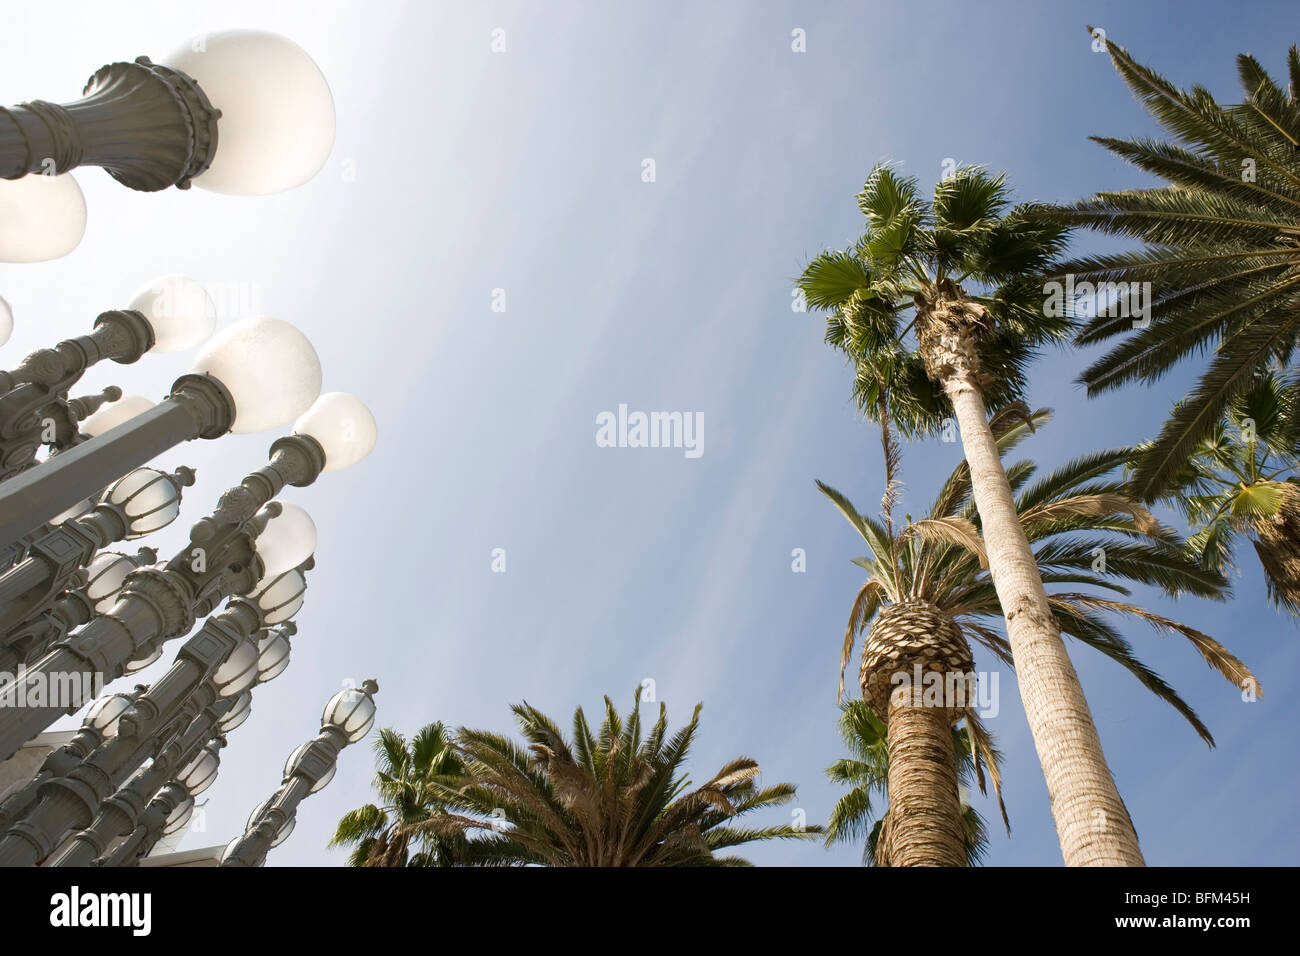 LACMA lights and palm trees with blue sky - Stock Image